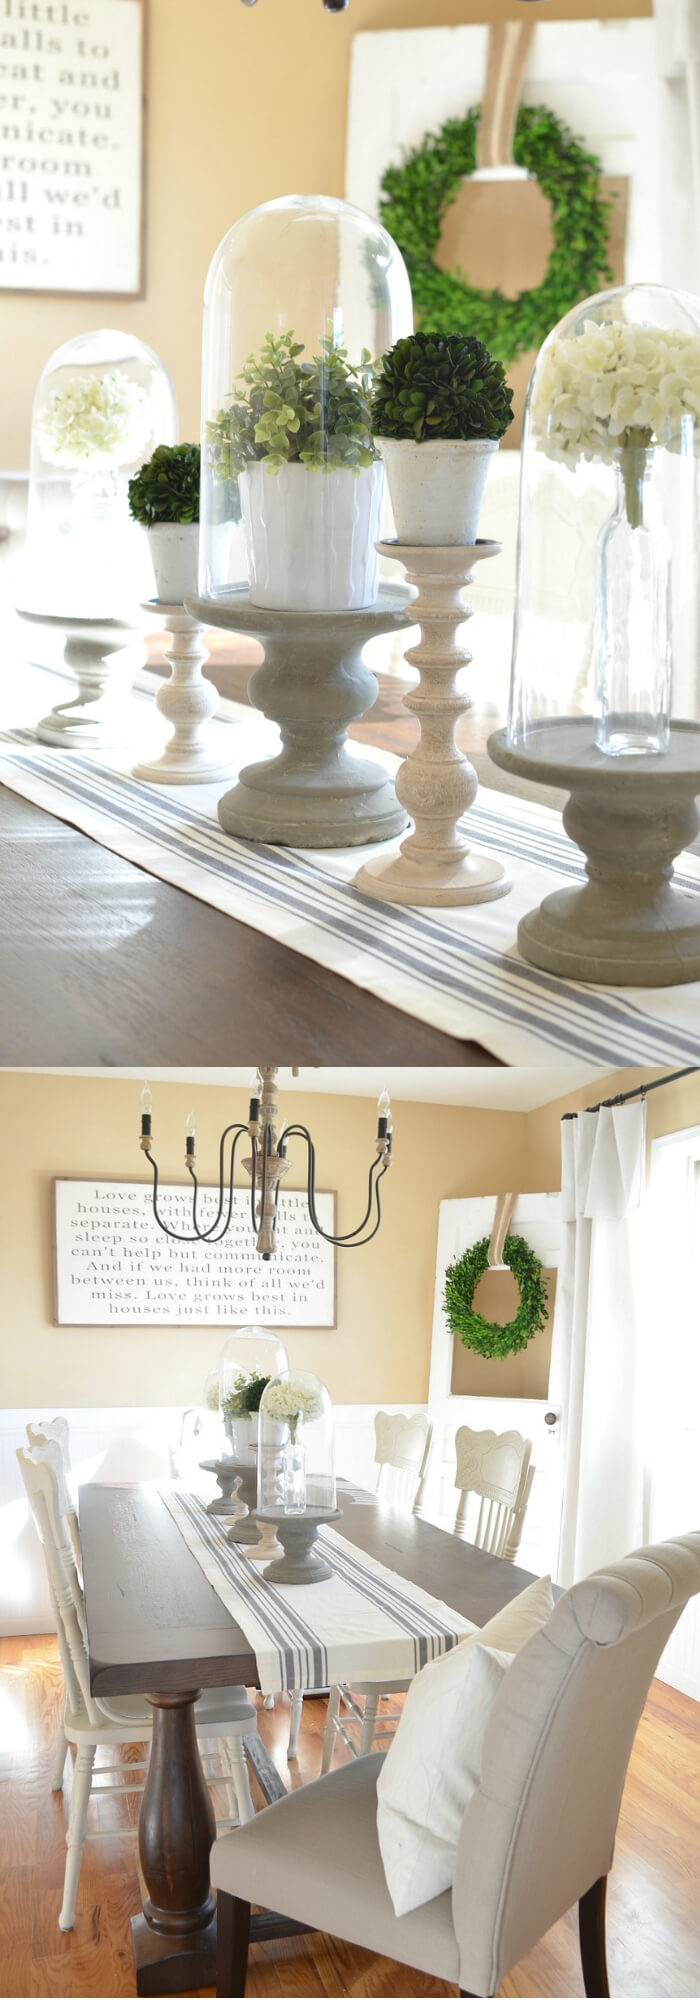 The dining table, chairs, and chandelier | Stunning Farmhouse Dining Room Design & Decor Ideas